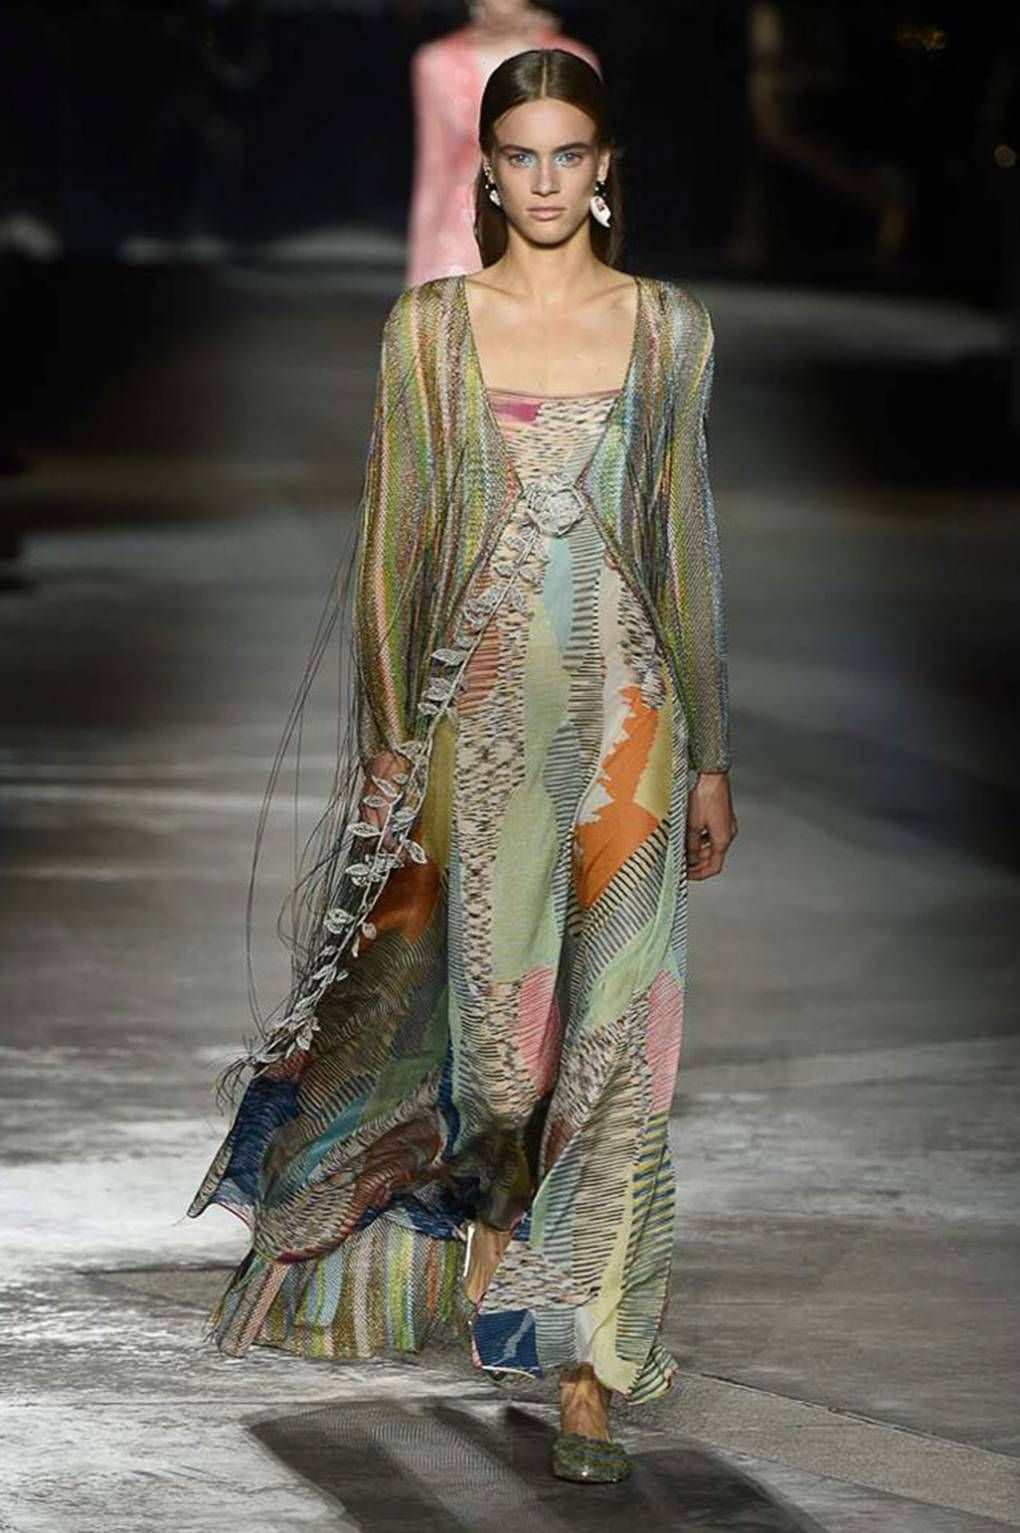 04d9bea8c5153 Missoni #fashiontrends Spring Summer 2019 Fashion Trends You Need To Know |  British Vogue #trends2019 @sora2015